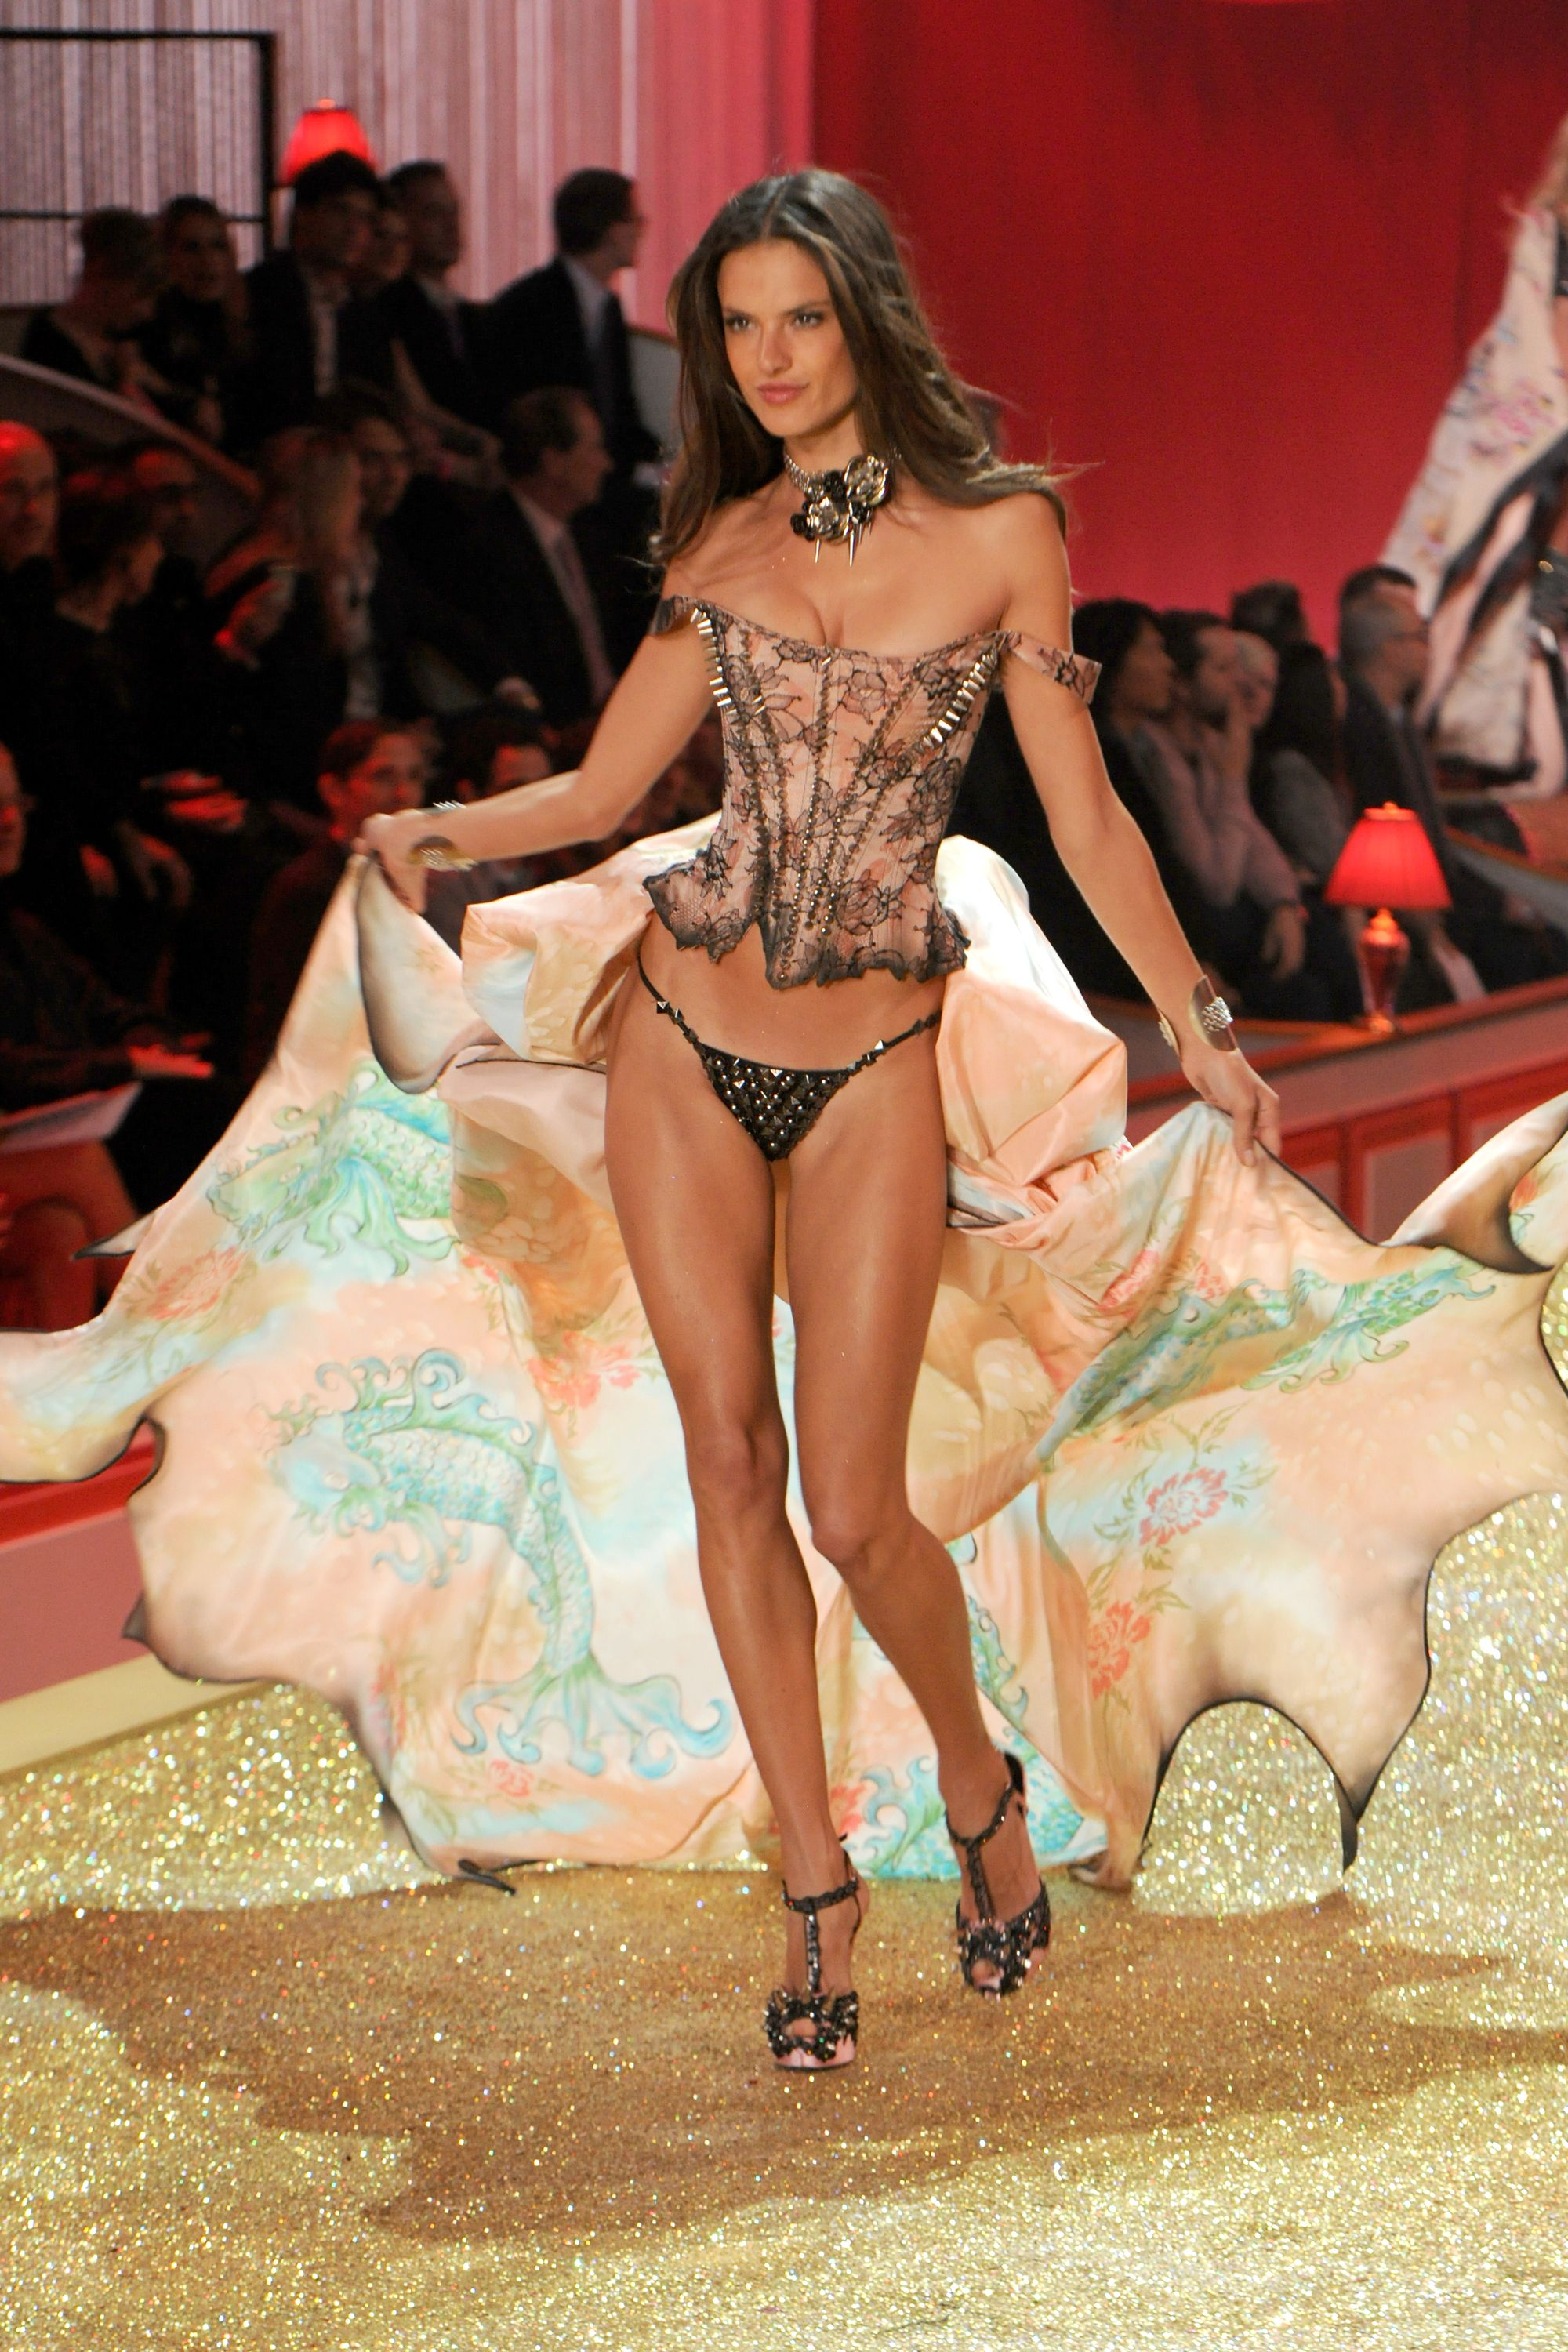 151bca0d1e29e Alessandra Ambrosio s Best Victoria s Secret Fashion Show Looks - Alessandra  Ambrosio s Last VS Fashion Show